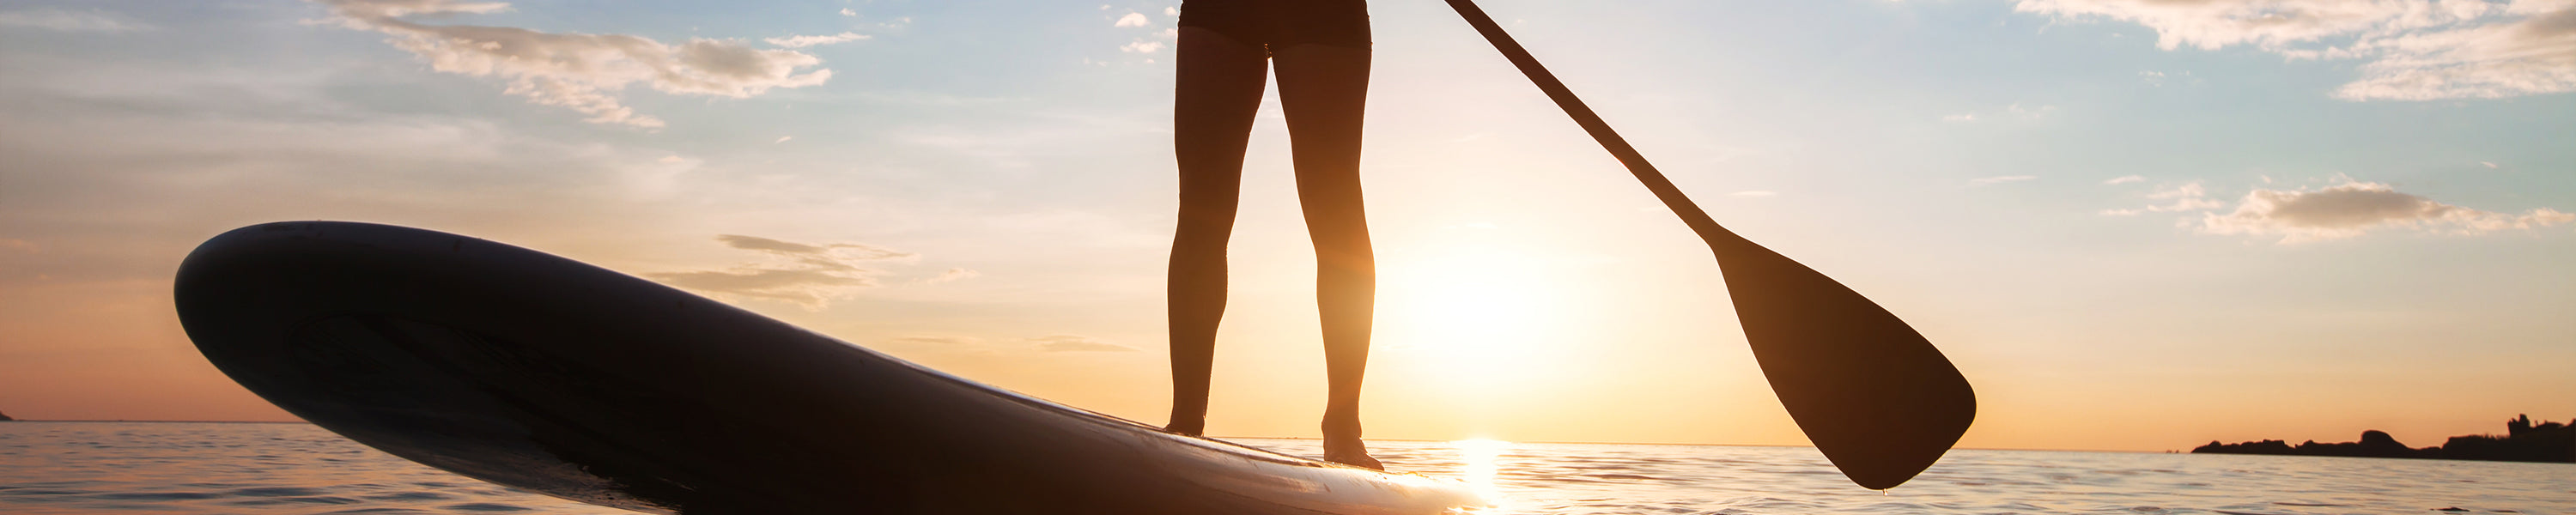 close up of a silhouetted paddle boarder standing on their board